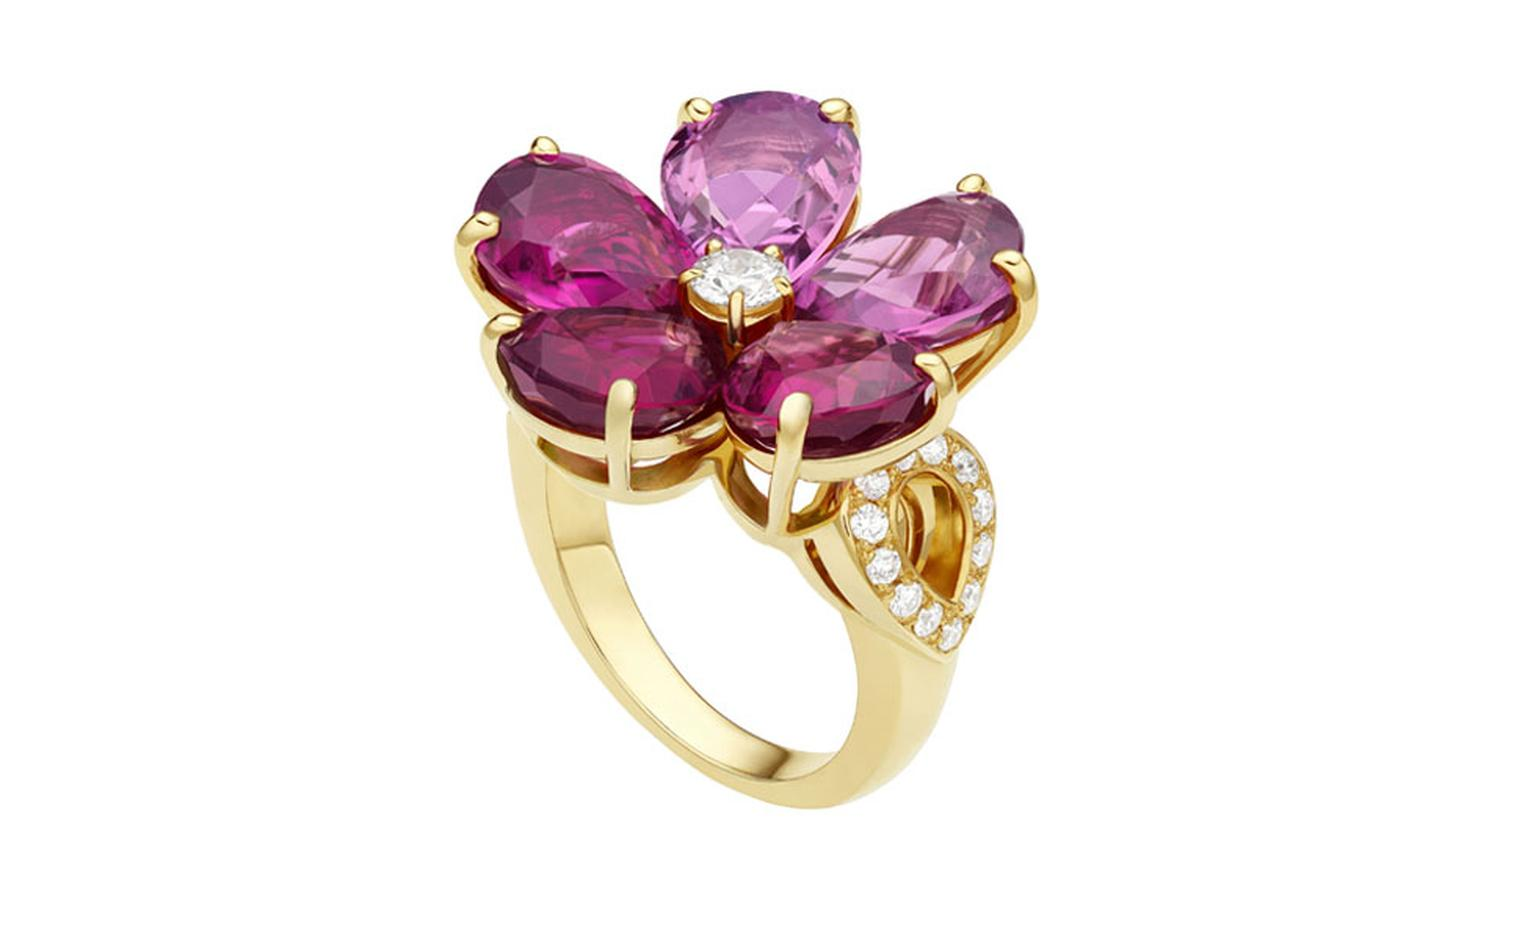 Bulgari. Mediterranean Eden yellow gold ring set with pink tourmalines, rubellites, and pavé diamonds. Price from £13.200,00